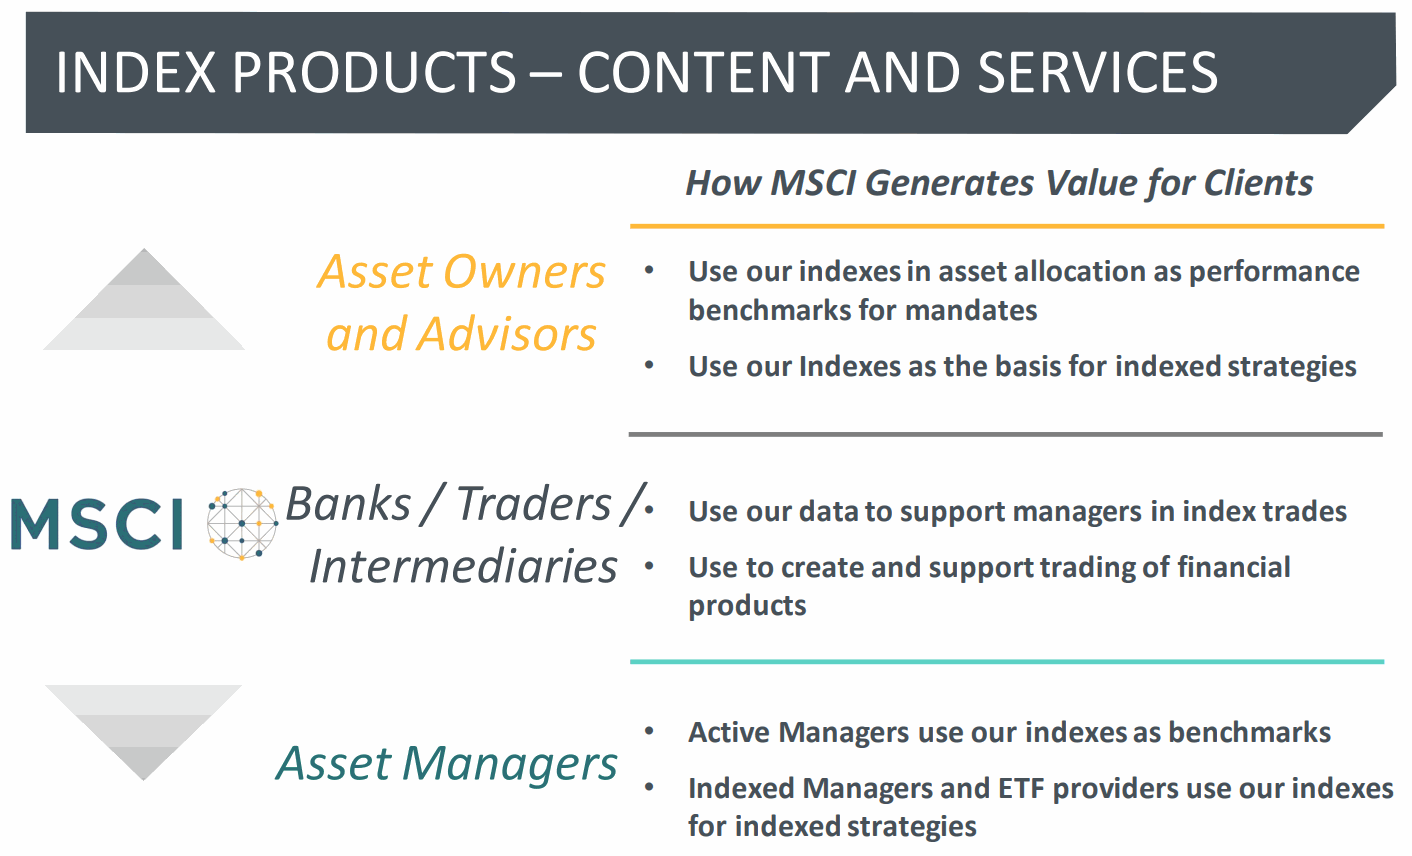 How-MSCI-Generates-Value-for-Clients